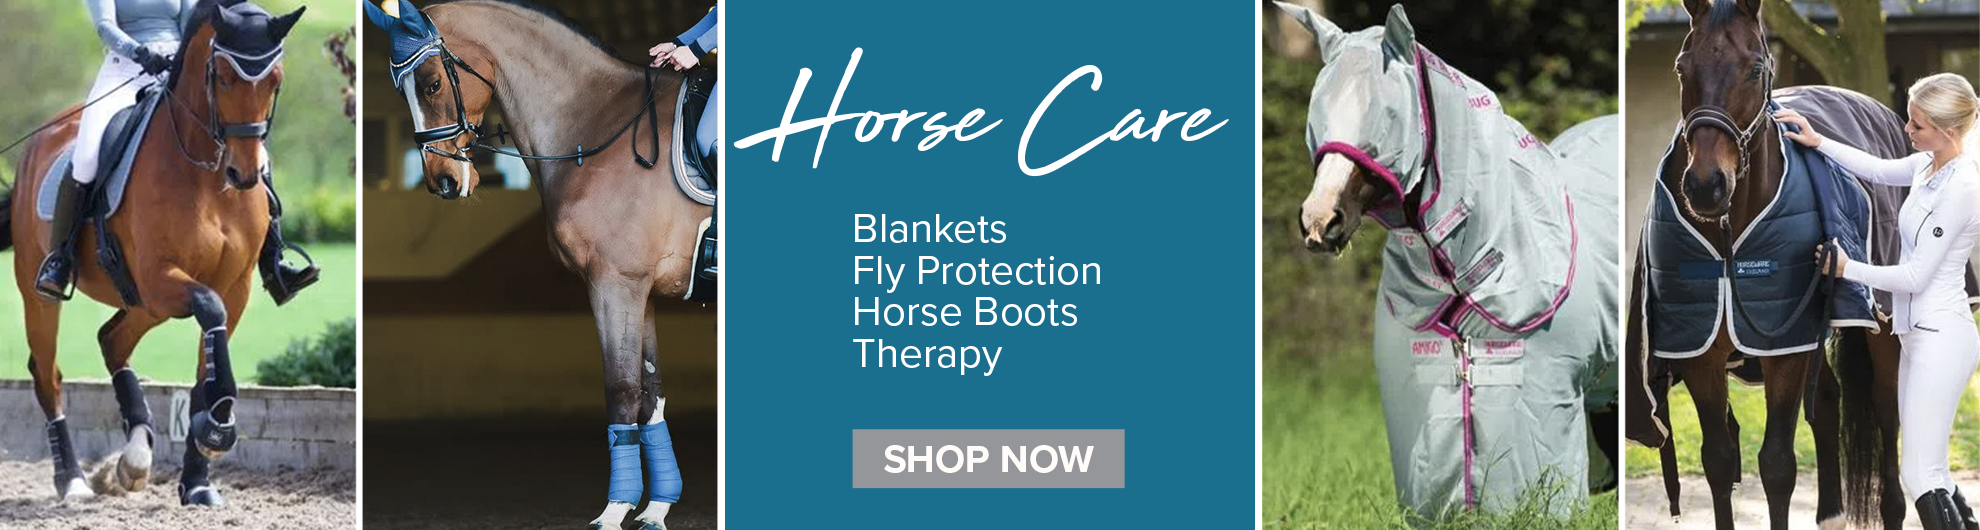 Horse Care on Equishopper